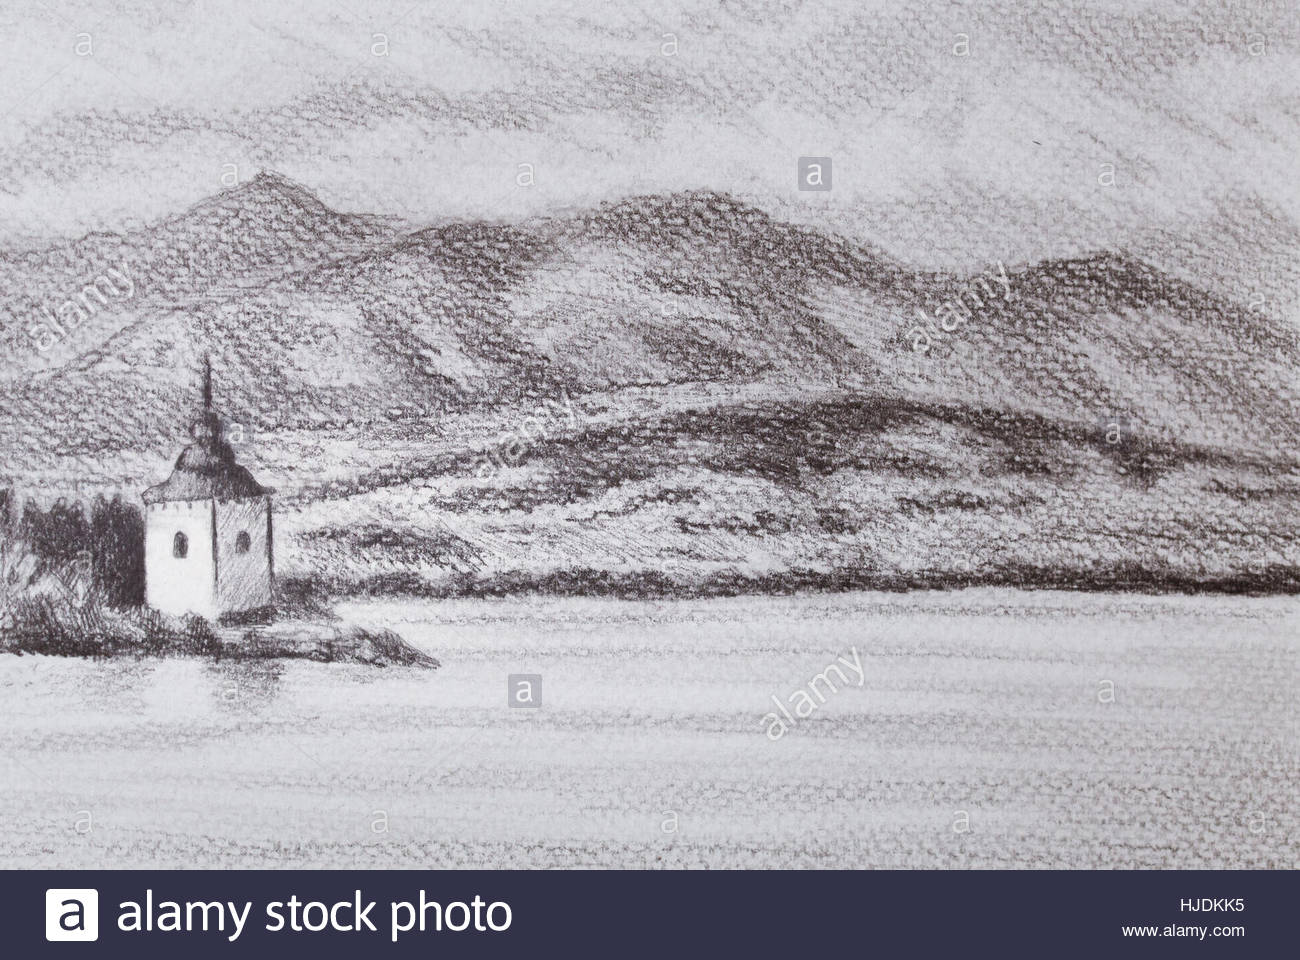 1300x960 Landcsape Scenery With Lake, Chapel And Mountains, Pencil Drawing